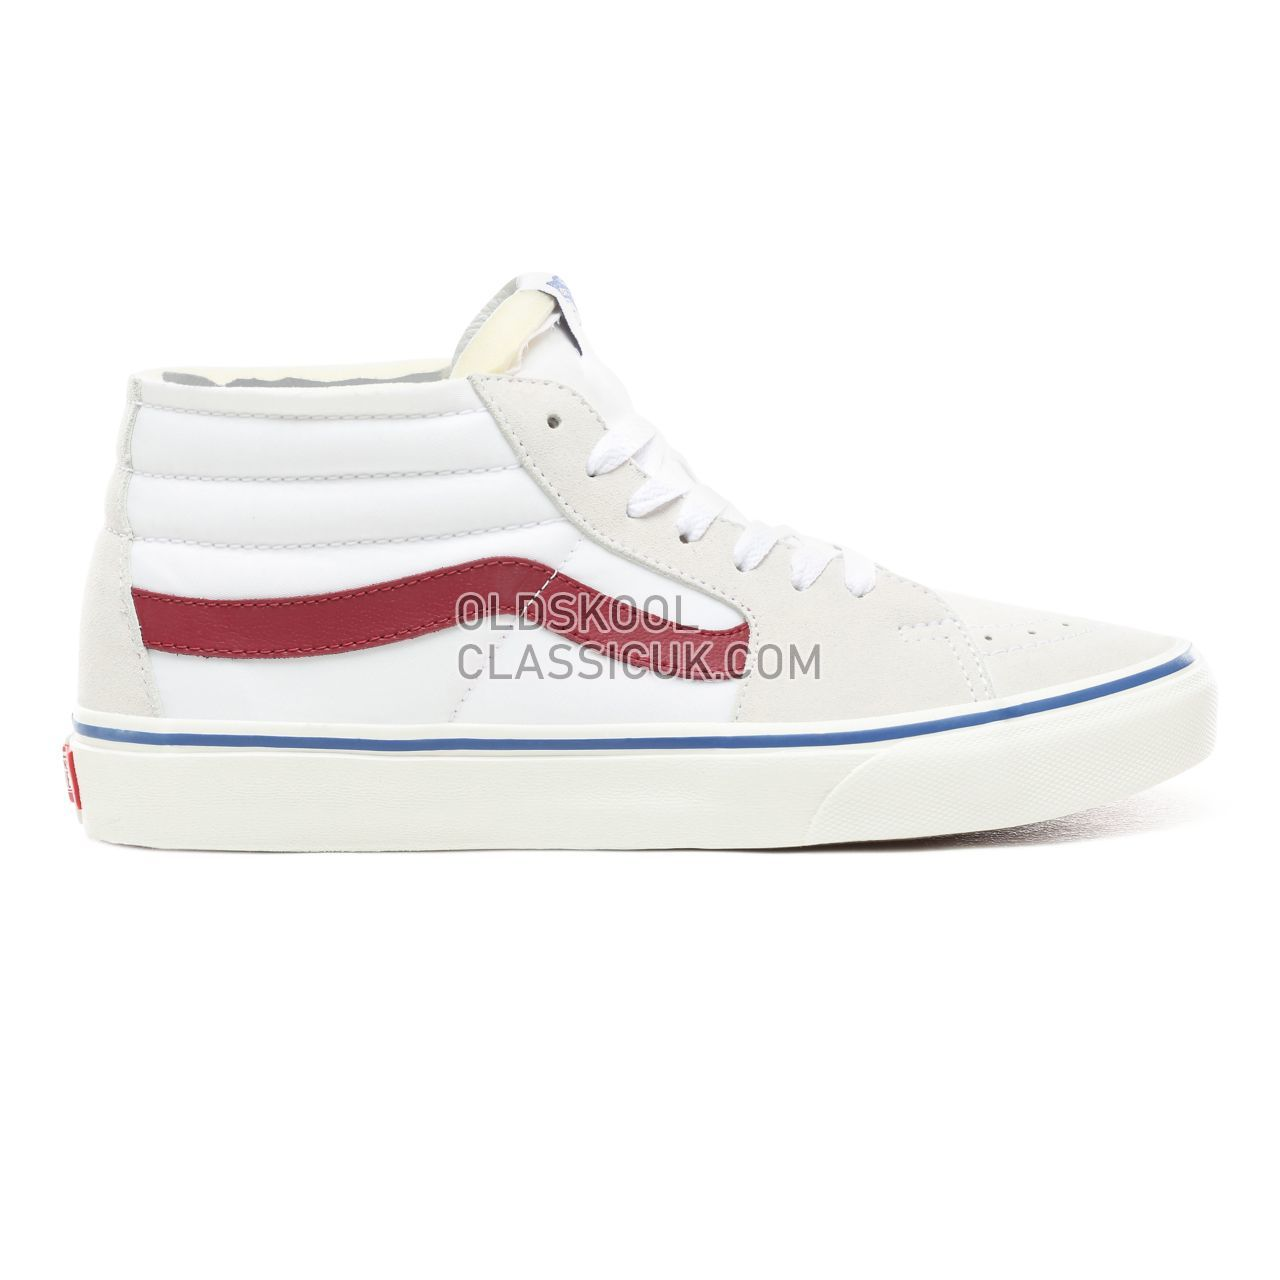 04a3f8a93b Vans Foam Sk8-Mid Sneakers Mens (Foam) True White Marshmallow VN0A3WM3VP3  Shoes ...